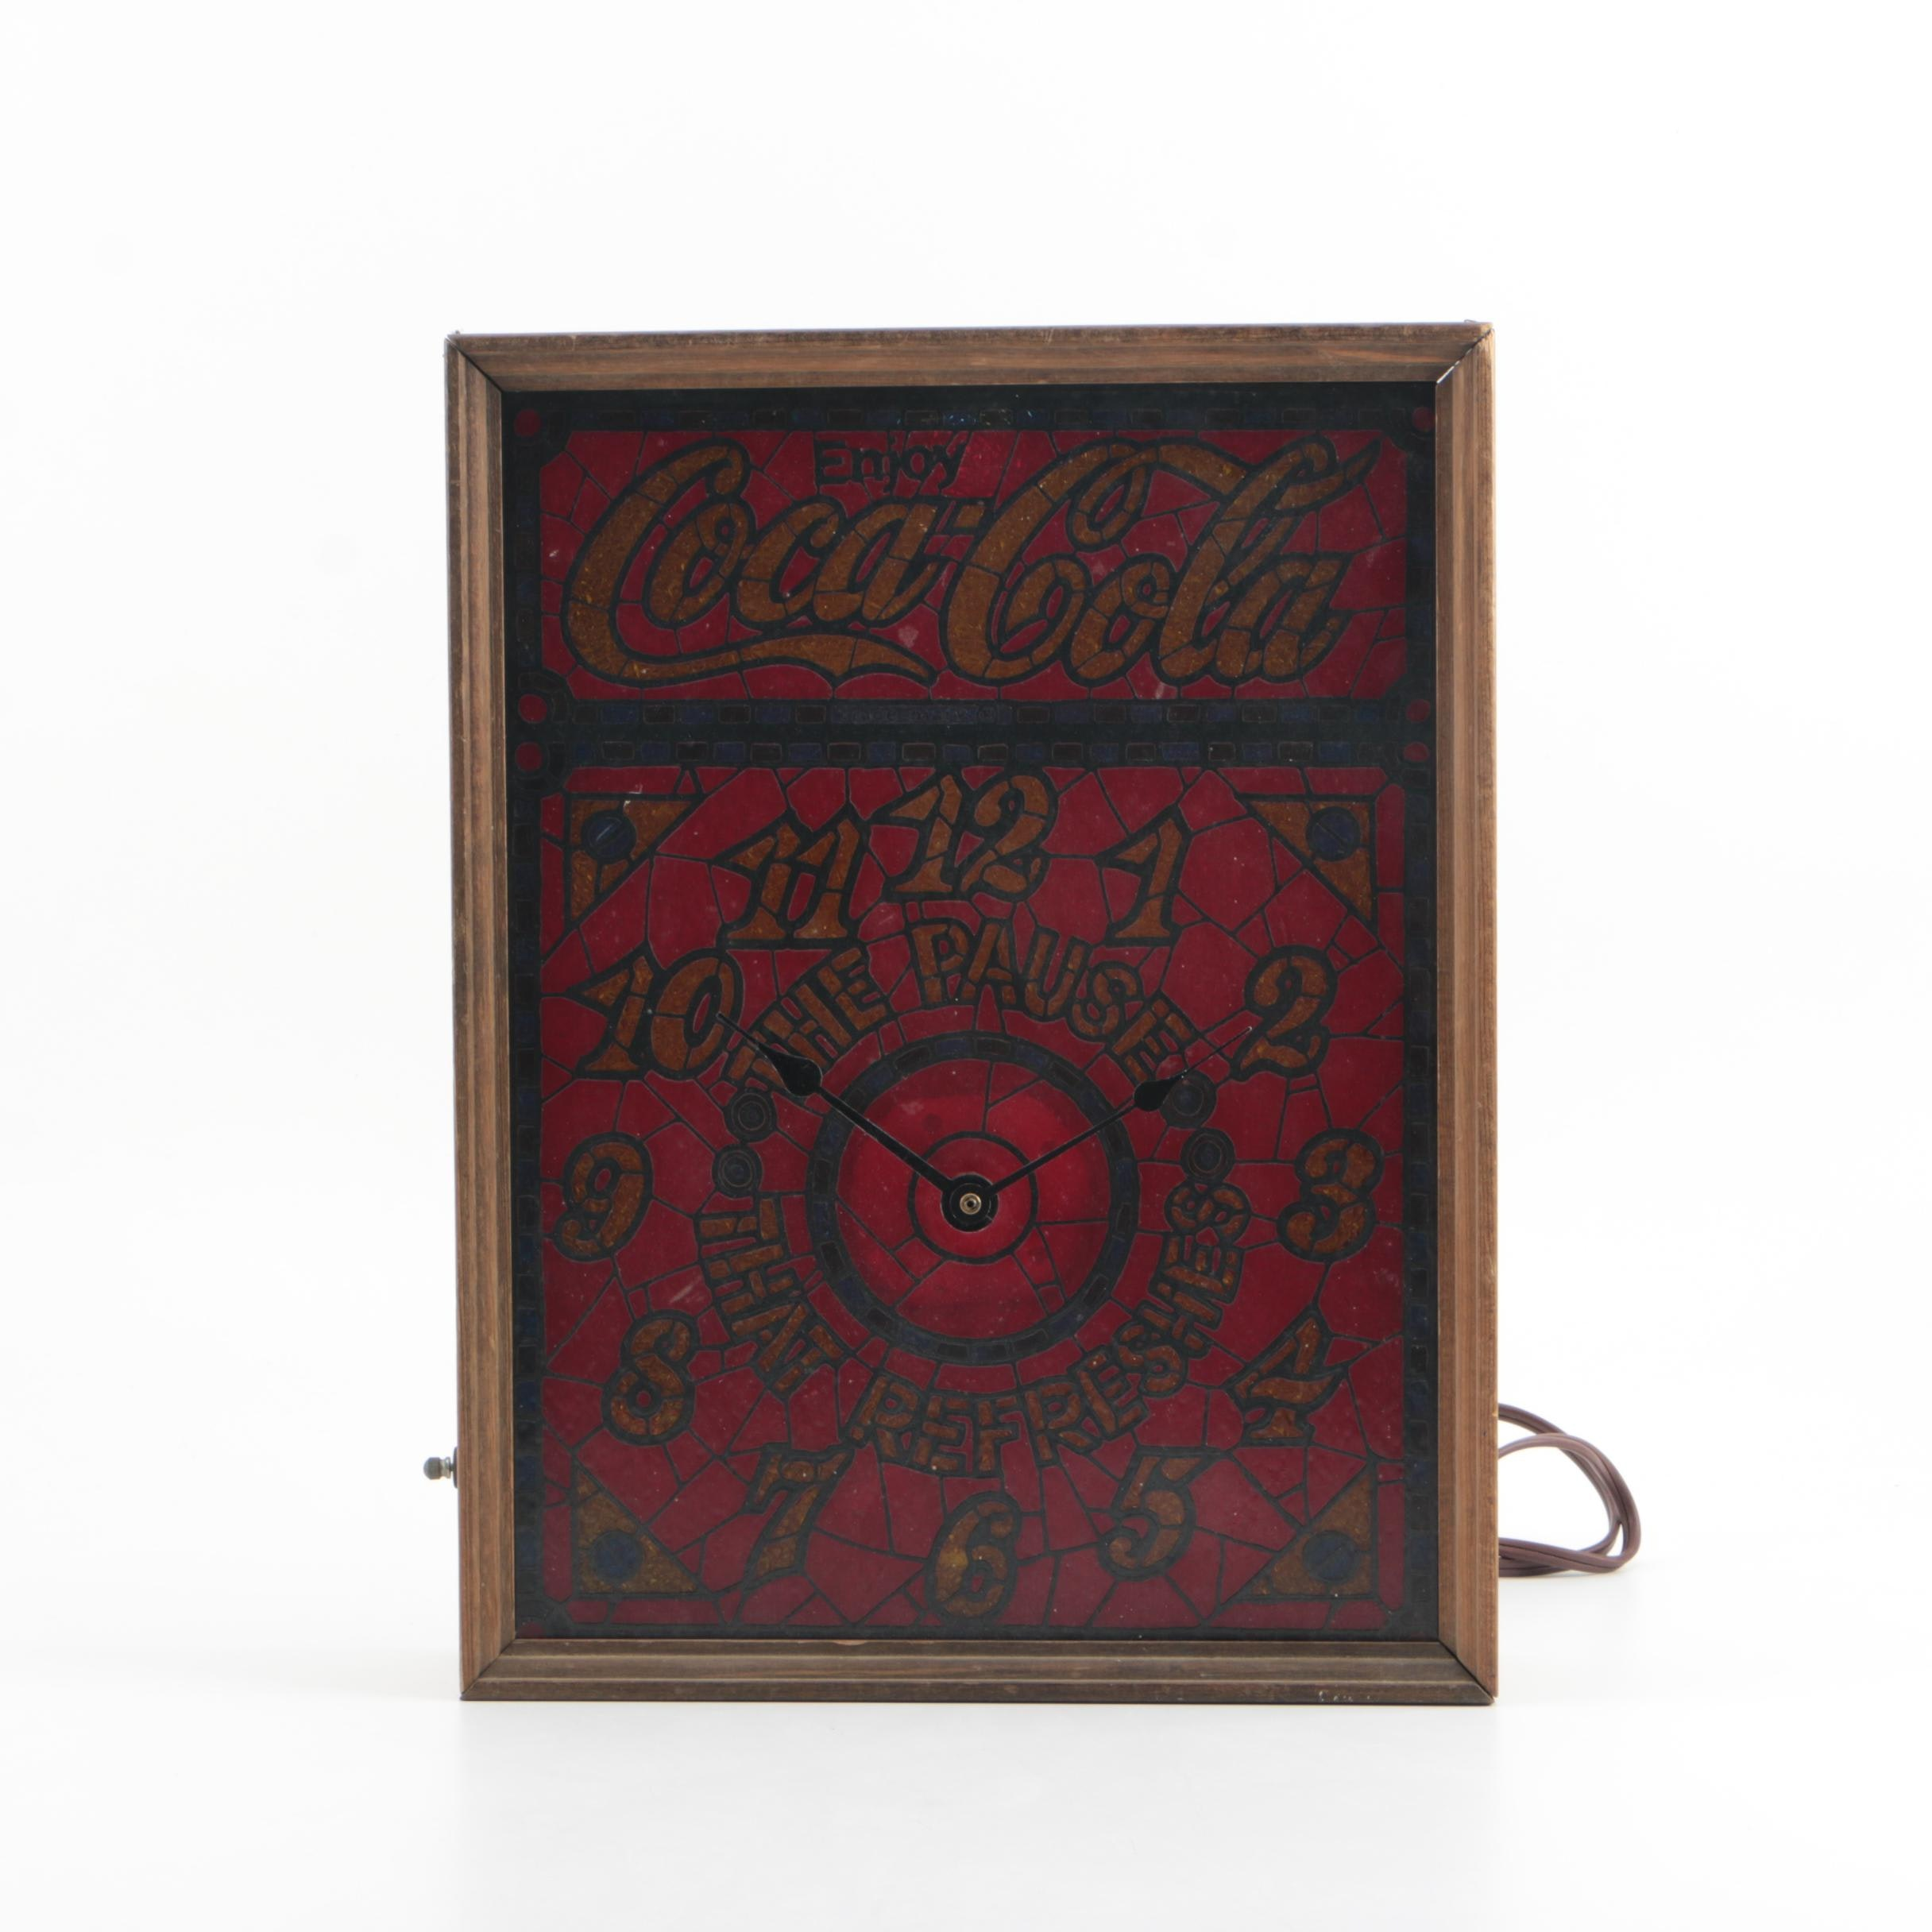 Vintage Coca Cola Faux Stained Glass Lighted Wall Clock